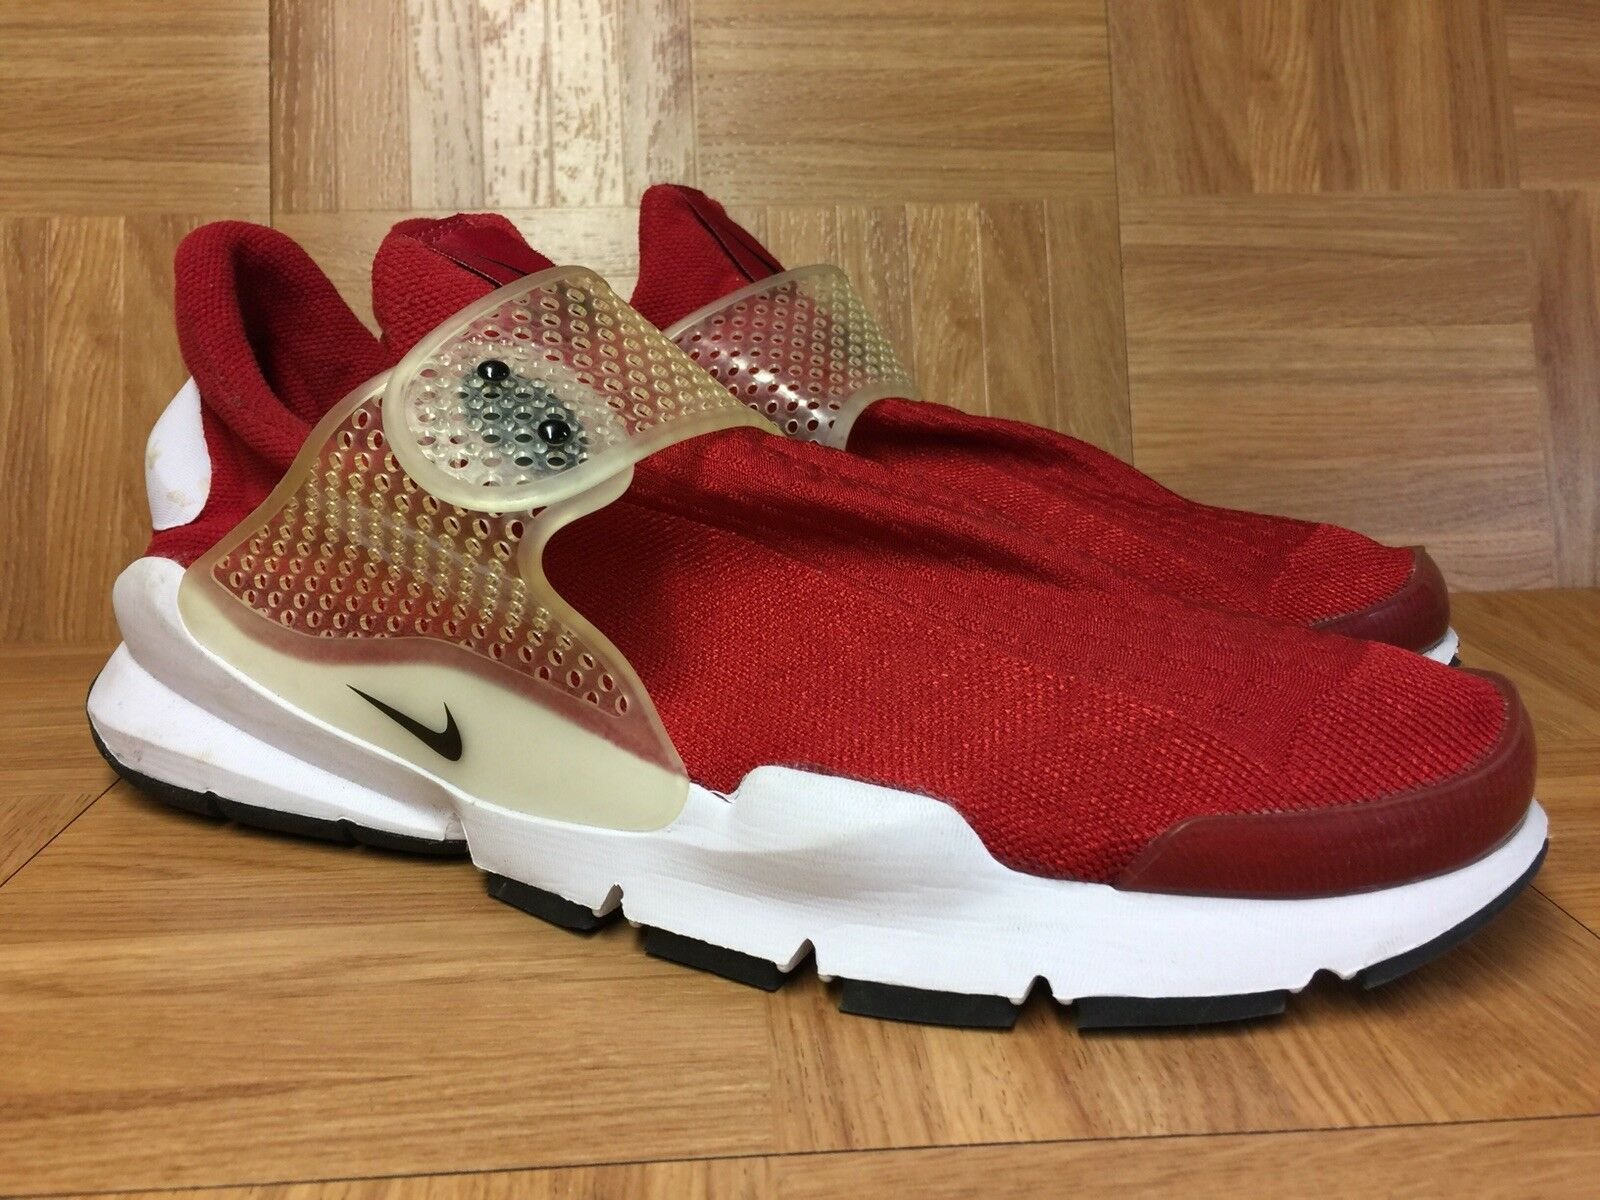 RARE Nike Sock Dart Gym Red White Sz 13 819686-601 Men's shoes LE Perf Strap